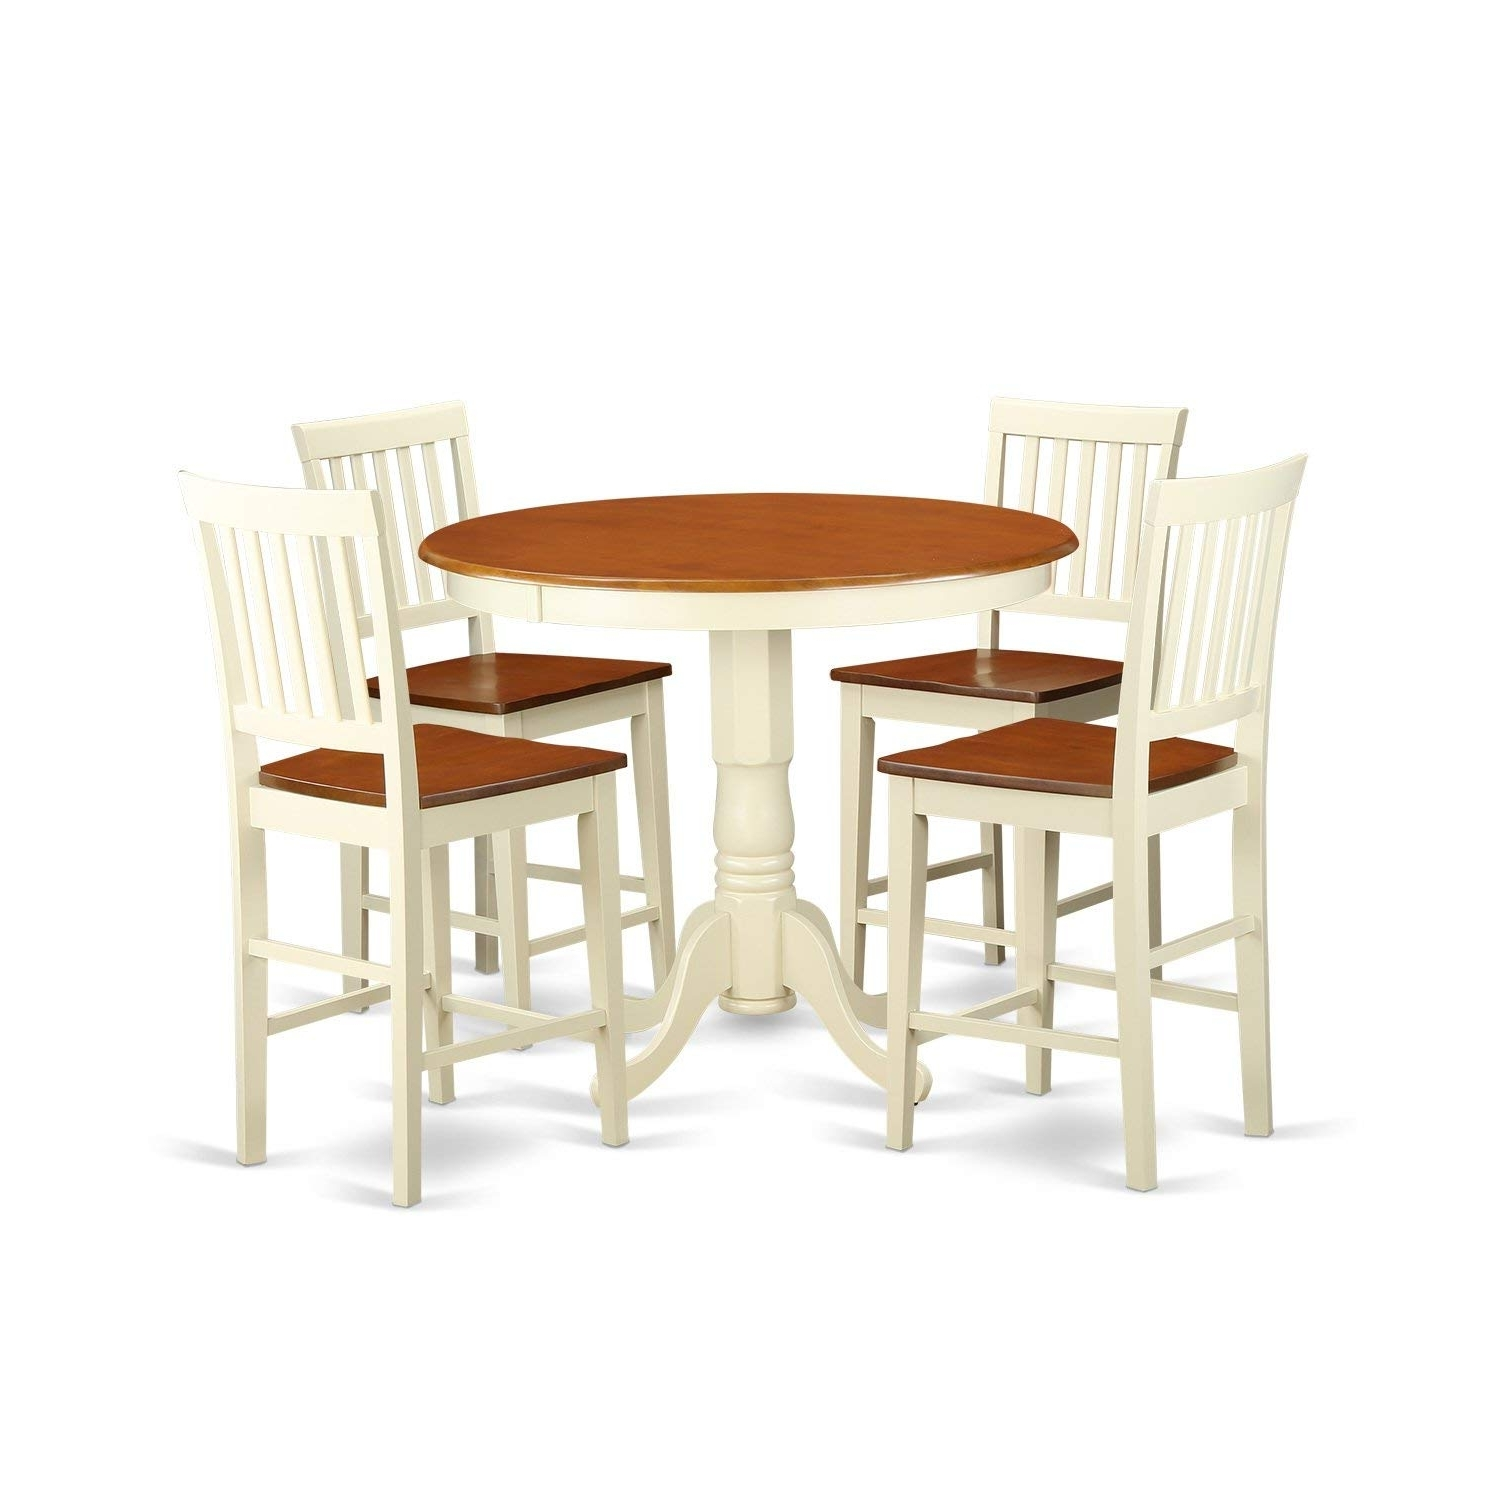 Most Popular Amazon – East West Furniture Javn5 Whi W 5 Piece Counter Height Intended For Jaxon Grey 5 Piece Extension Counter Sets With Wood Stools (View 12 of 25)